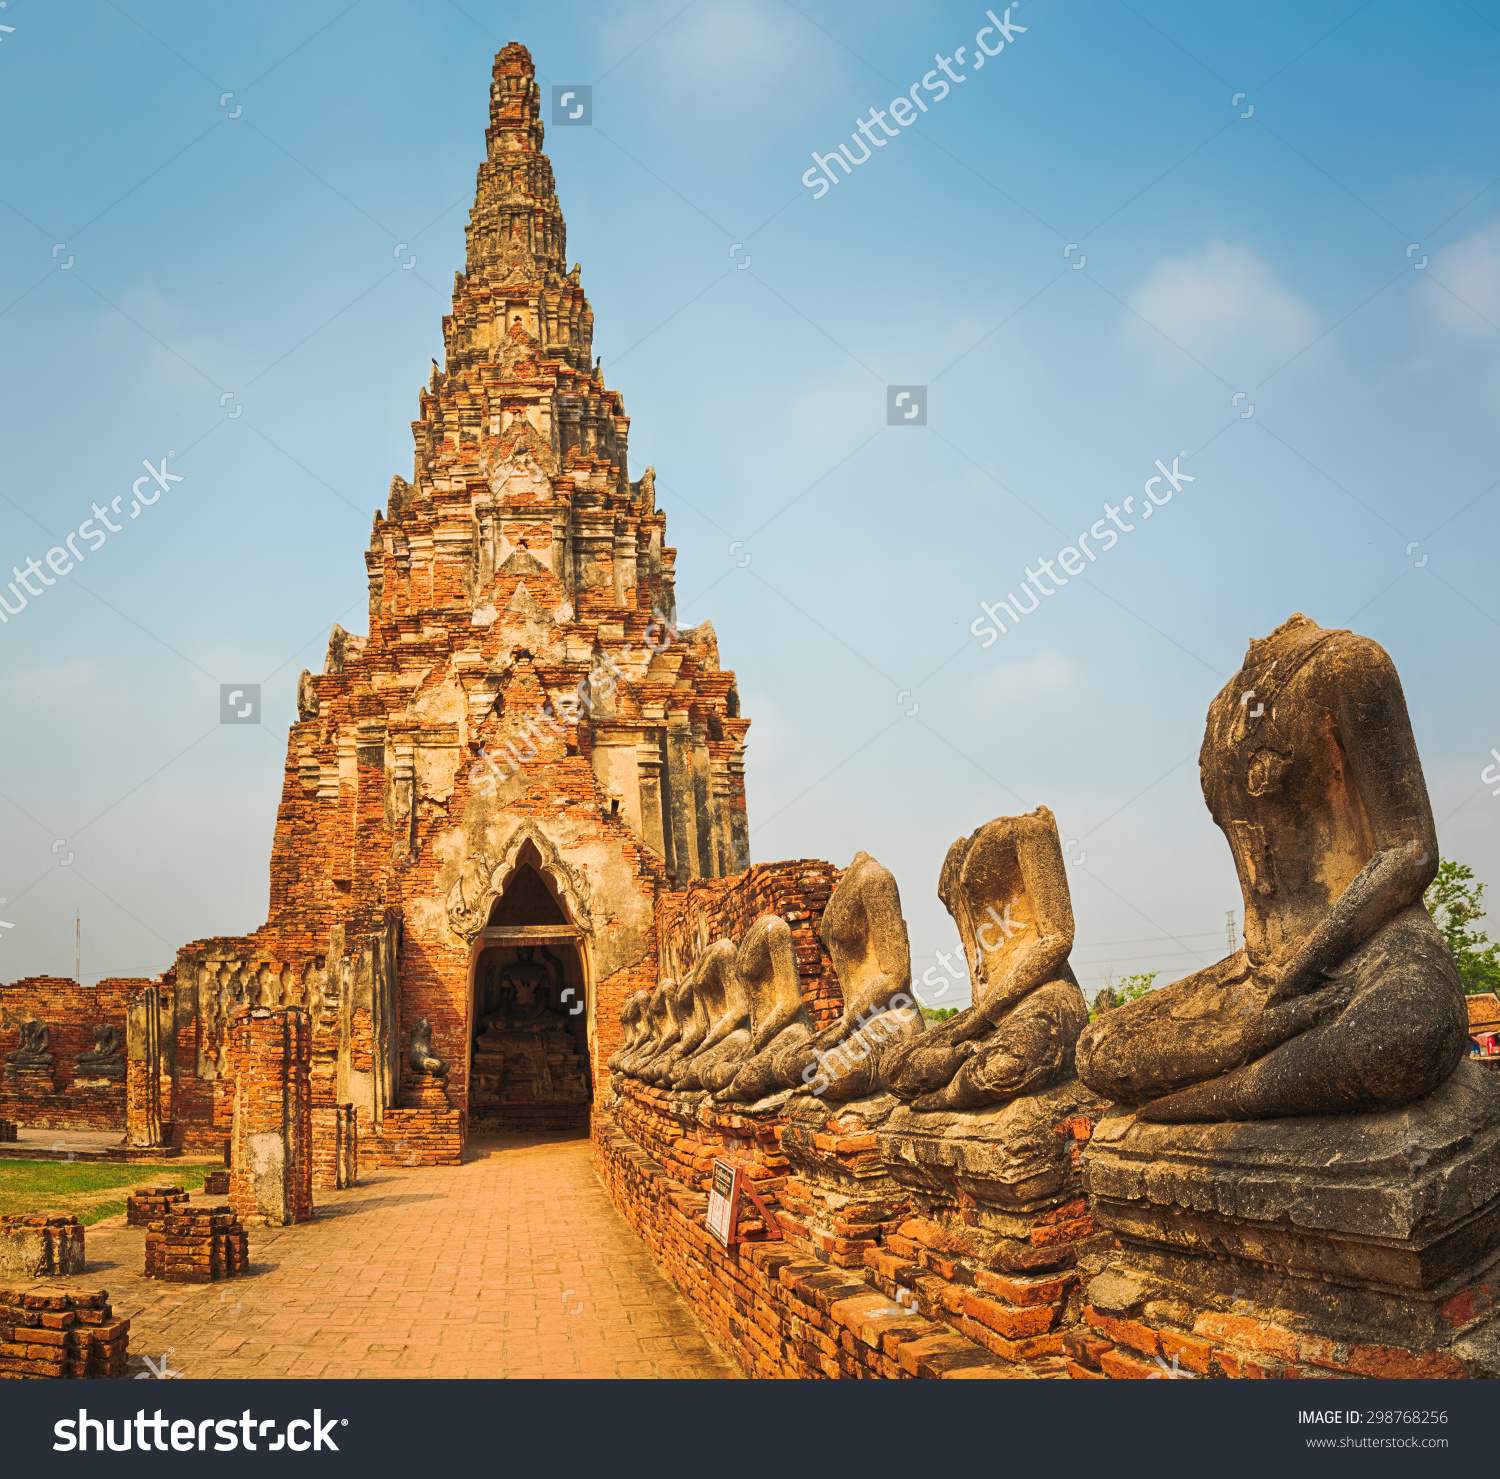 Headless Buddhas Statues Wat Chaiwatthanaram Ayutthaya Stock Photo.